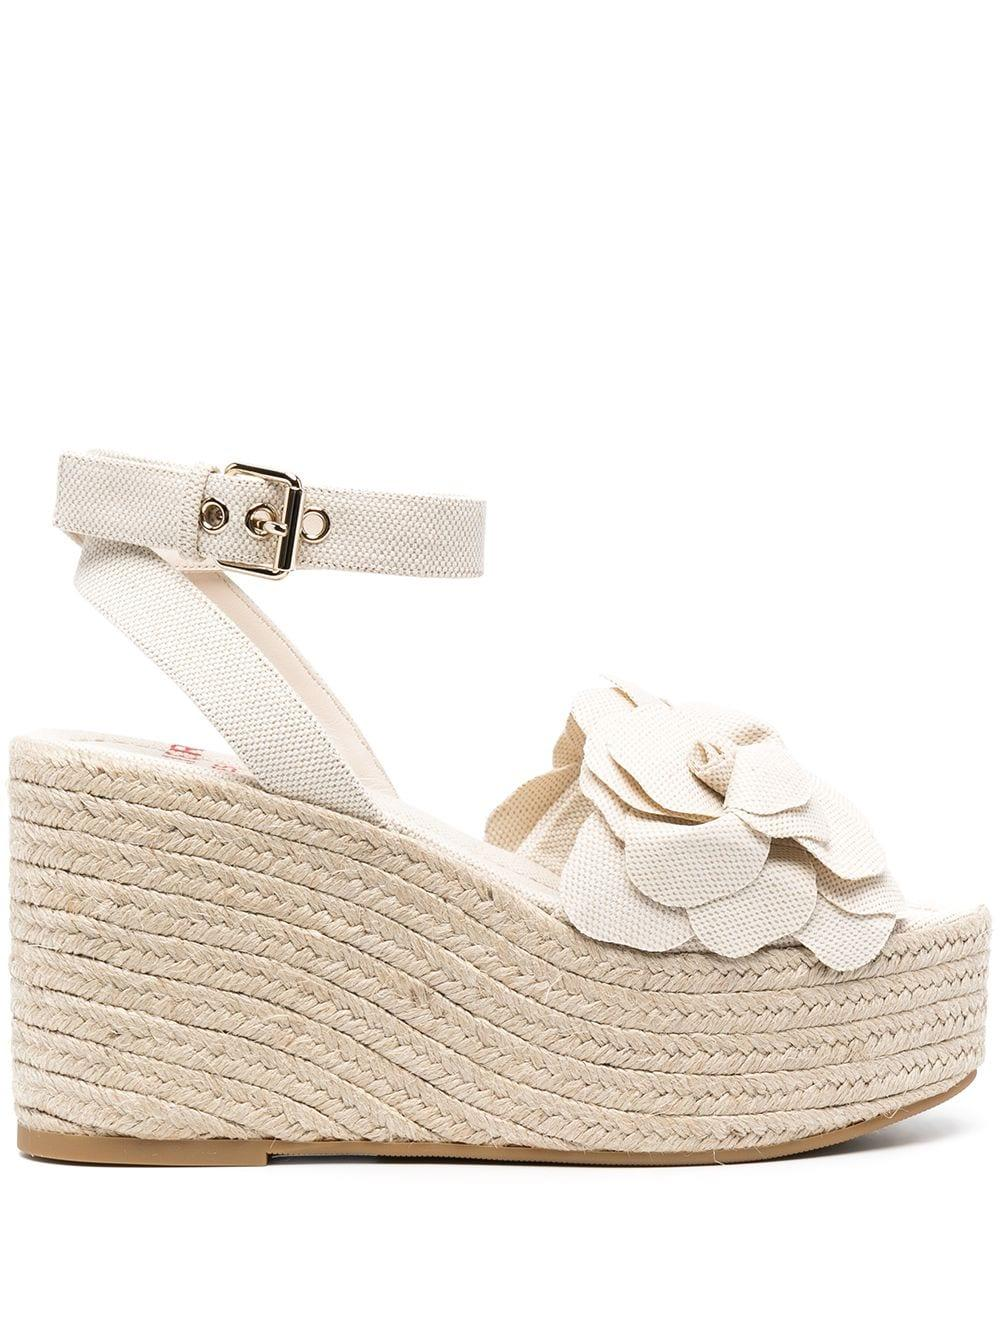 Canvas Wedge Espadrille Item # VW2S0BE6IBB